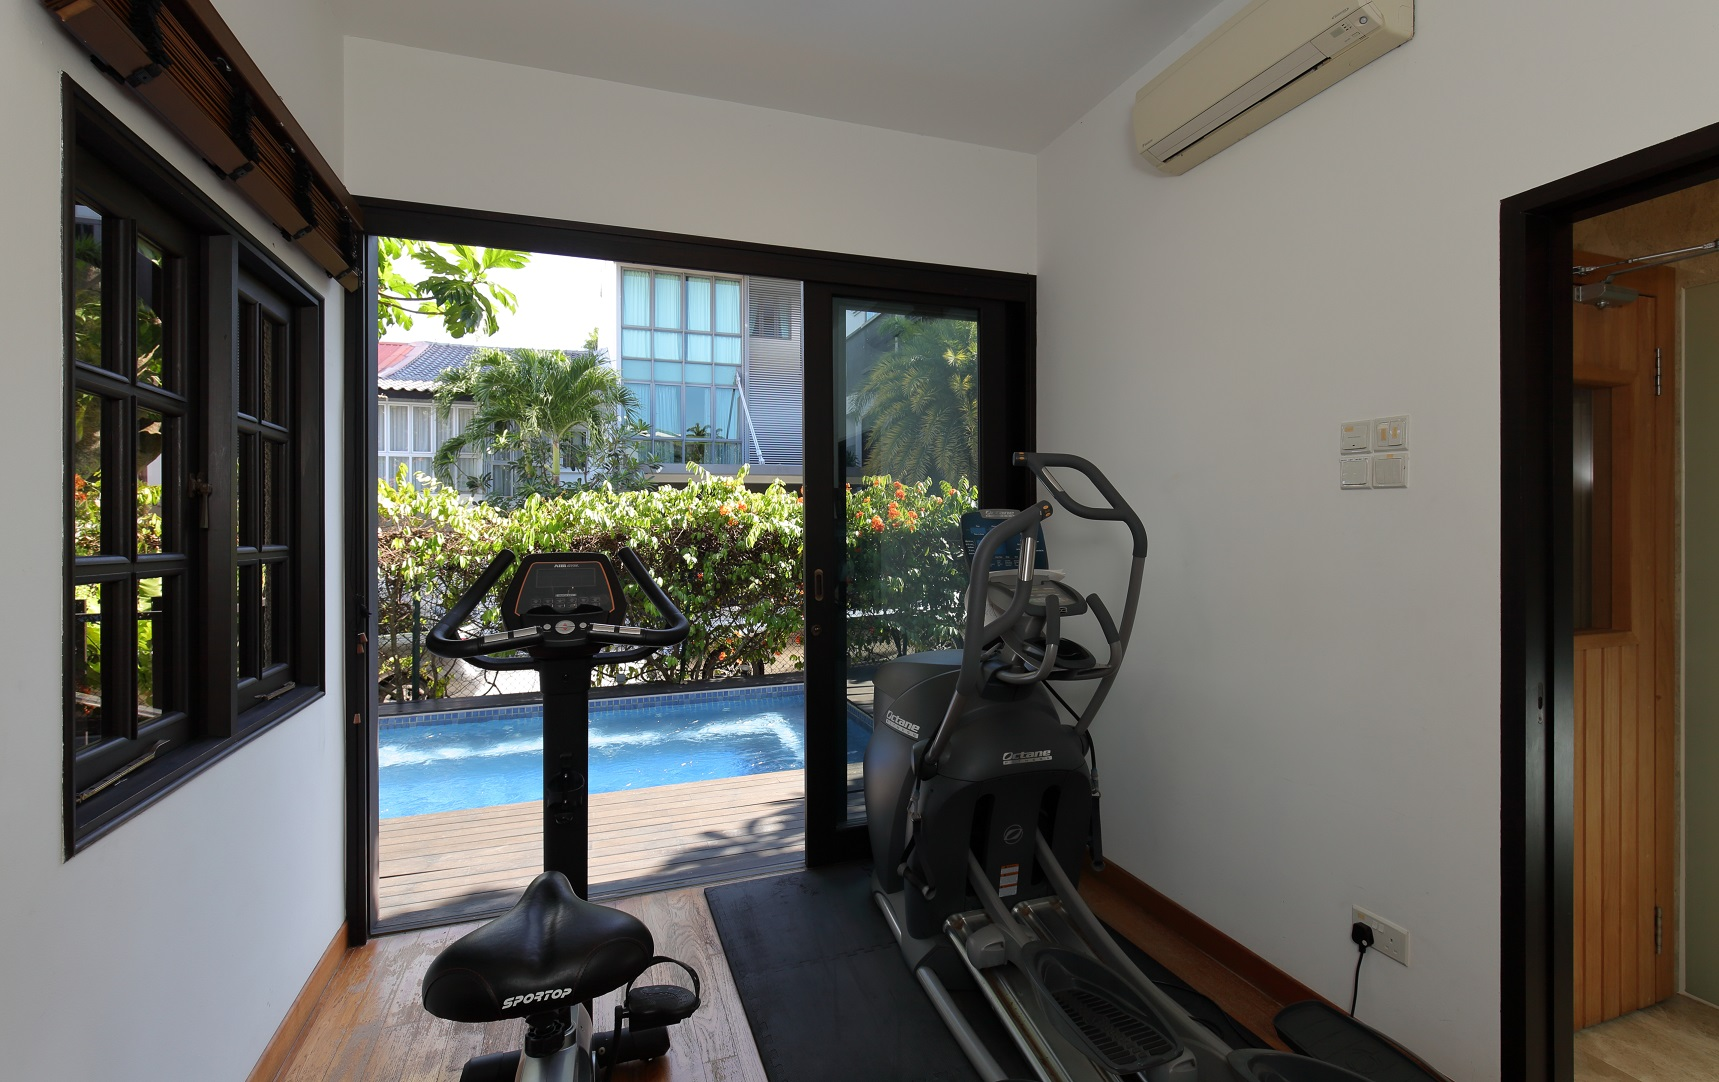 The gym opens out to the jacuzzi pool (Photo: Samuel Isaac Chua/EdgeProp Singapore) - EDGEPROP SINGAPORE